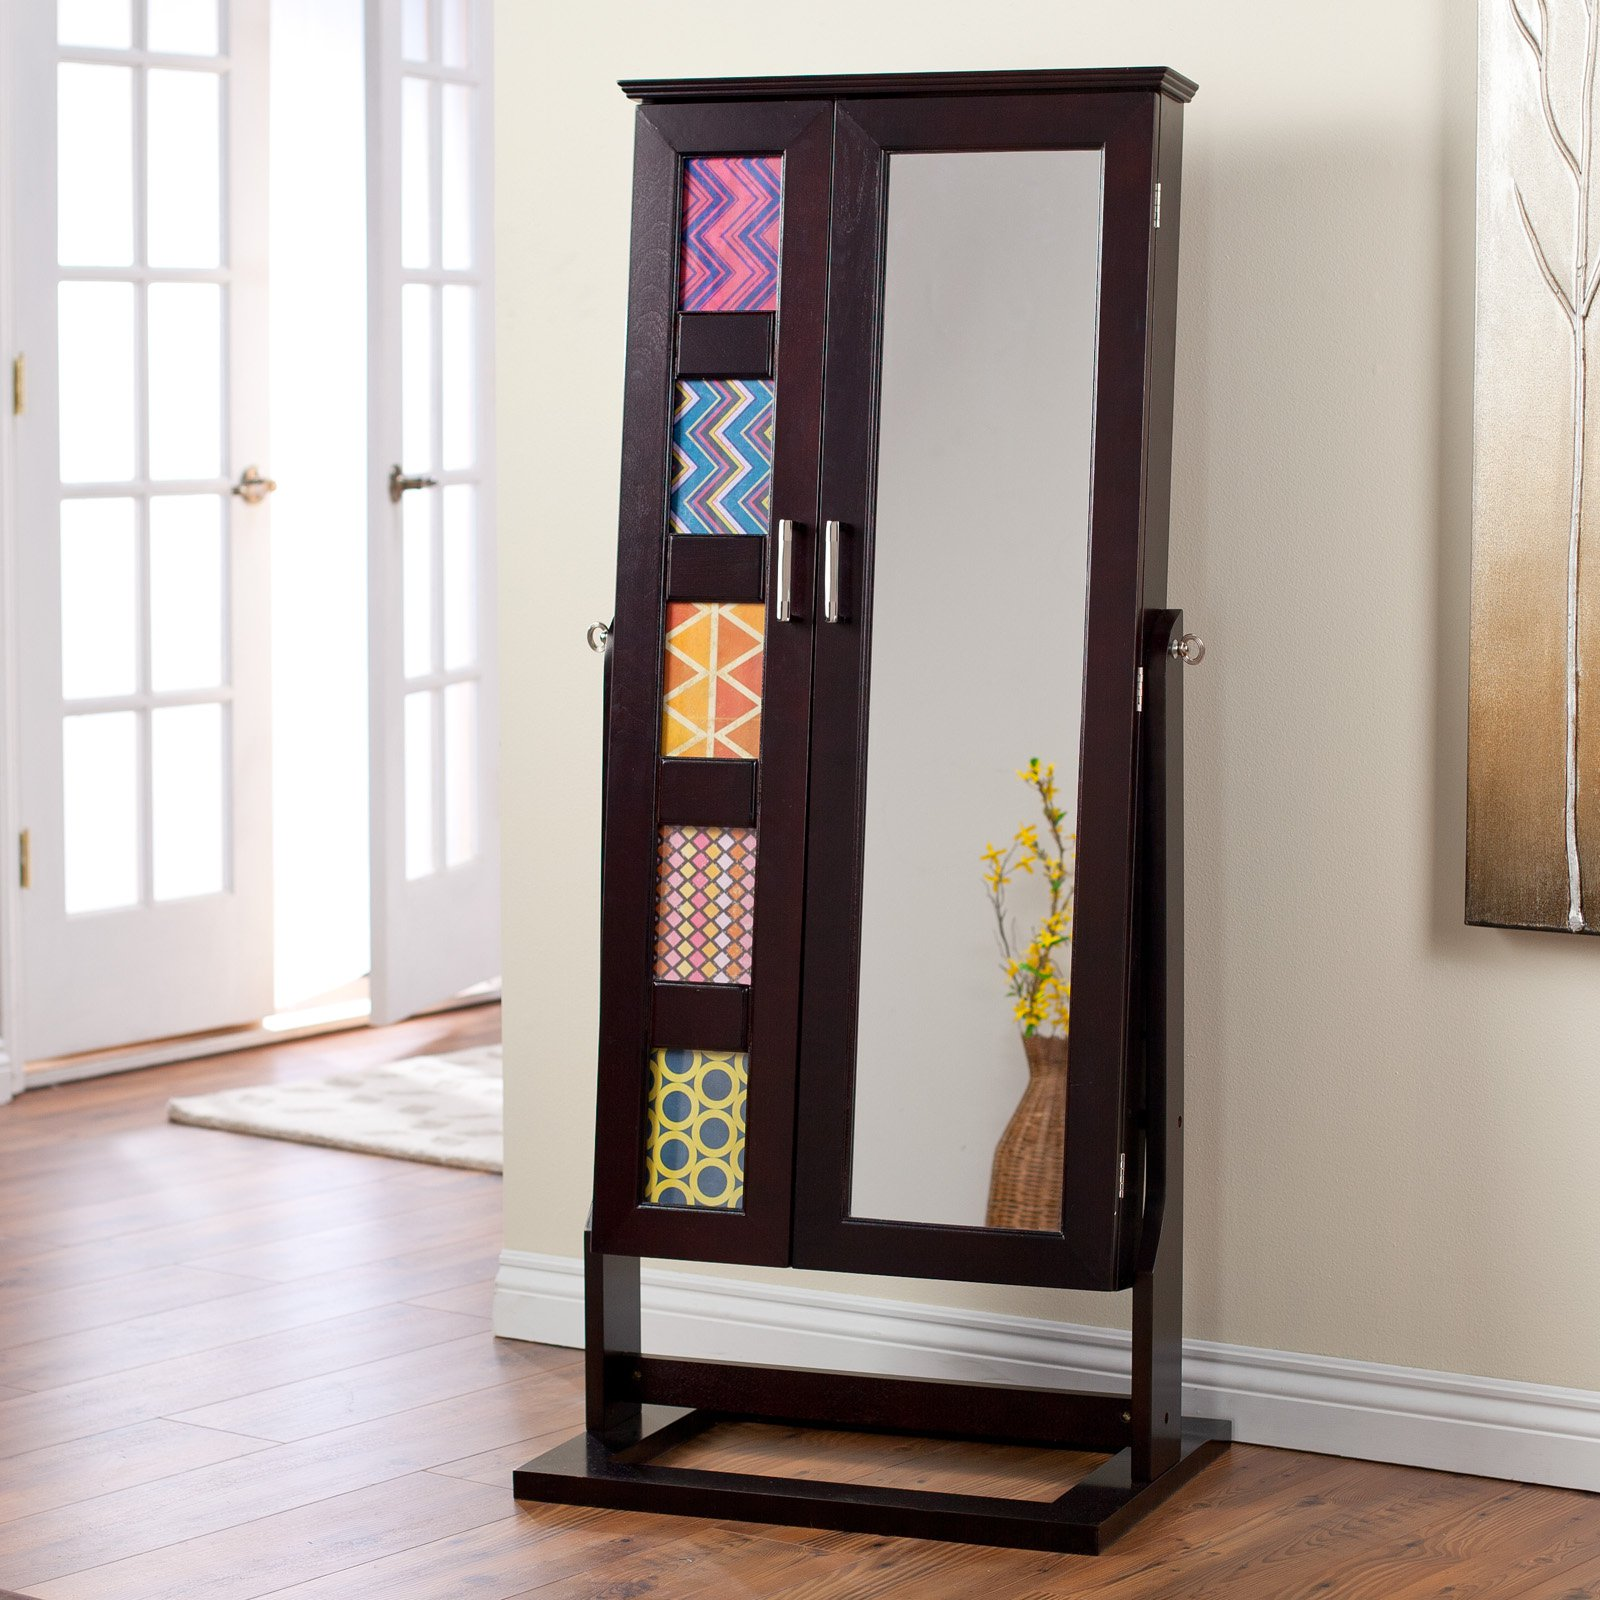 Espresso large jewelry armoire with frames and mirror